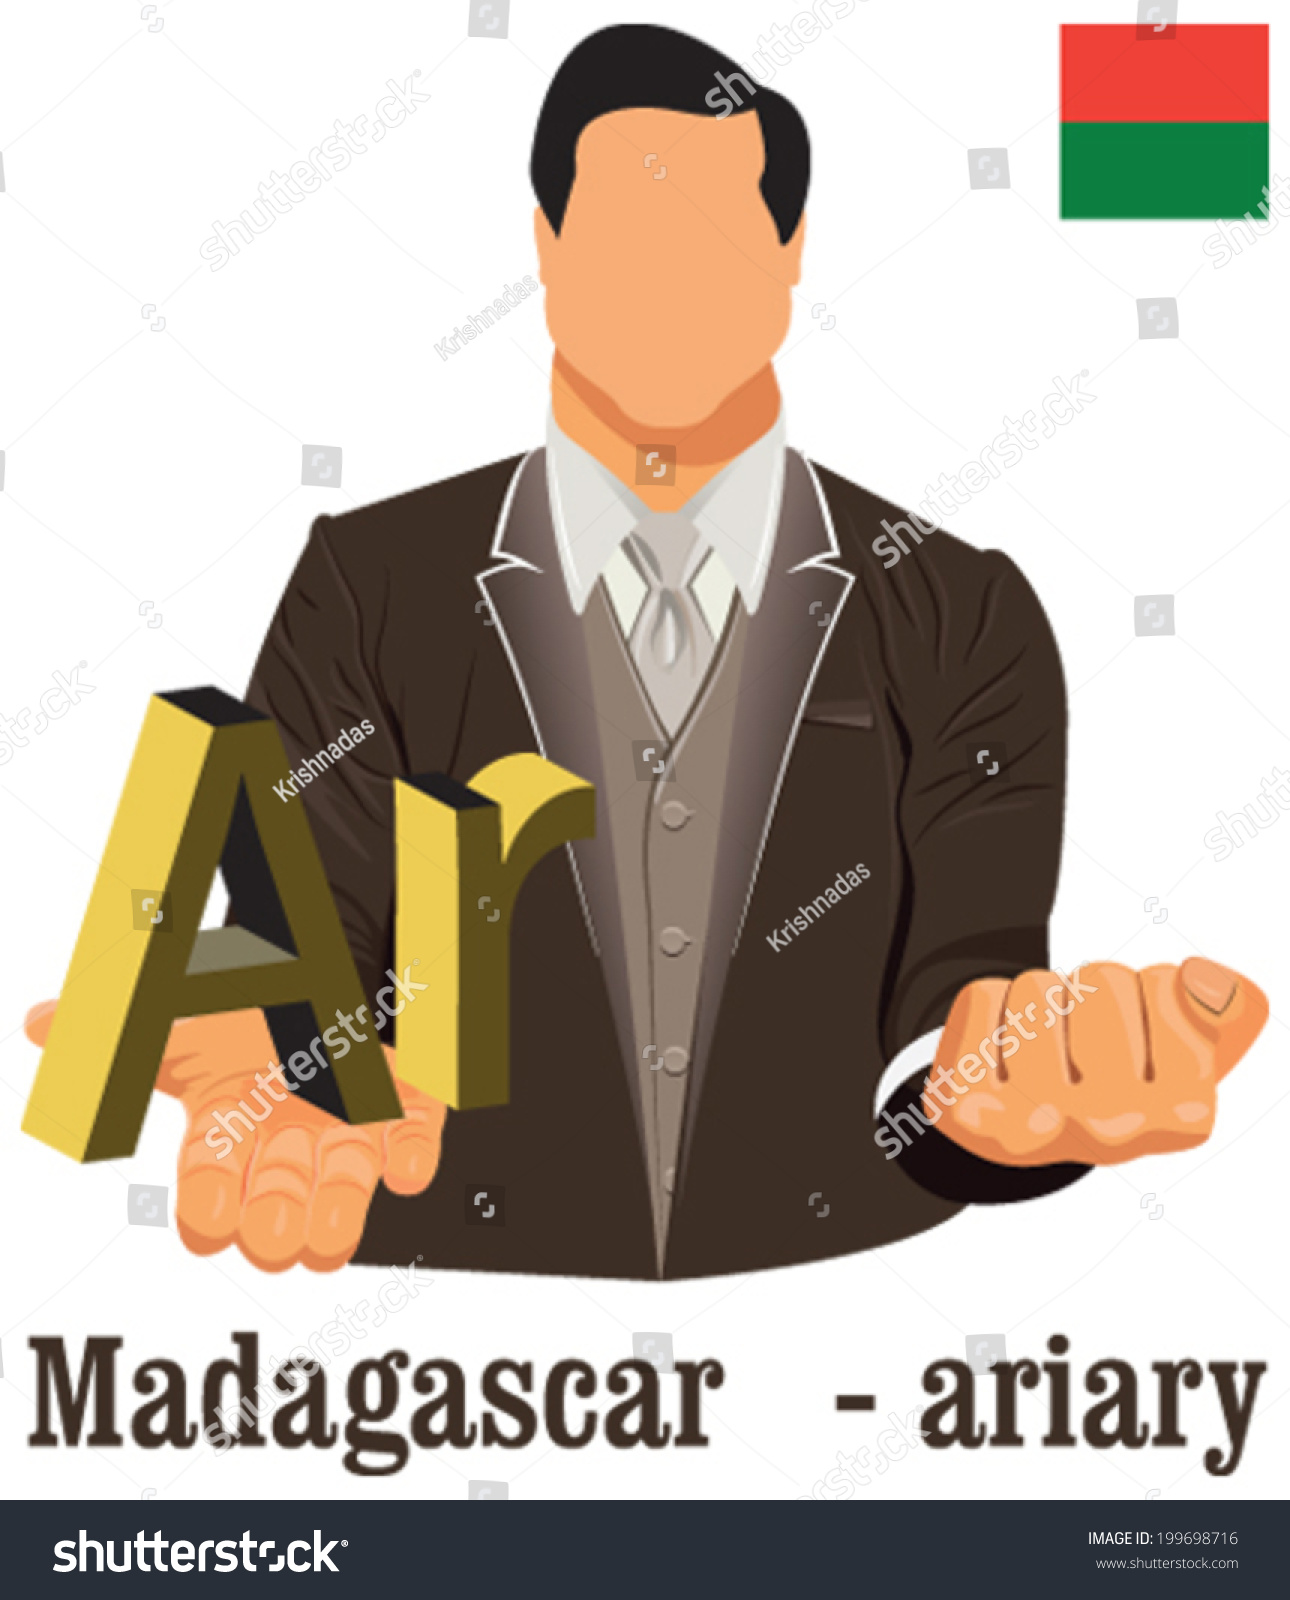 Madagascar National Currency Malagasy Ariary Symbol Stock Vector